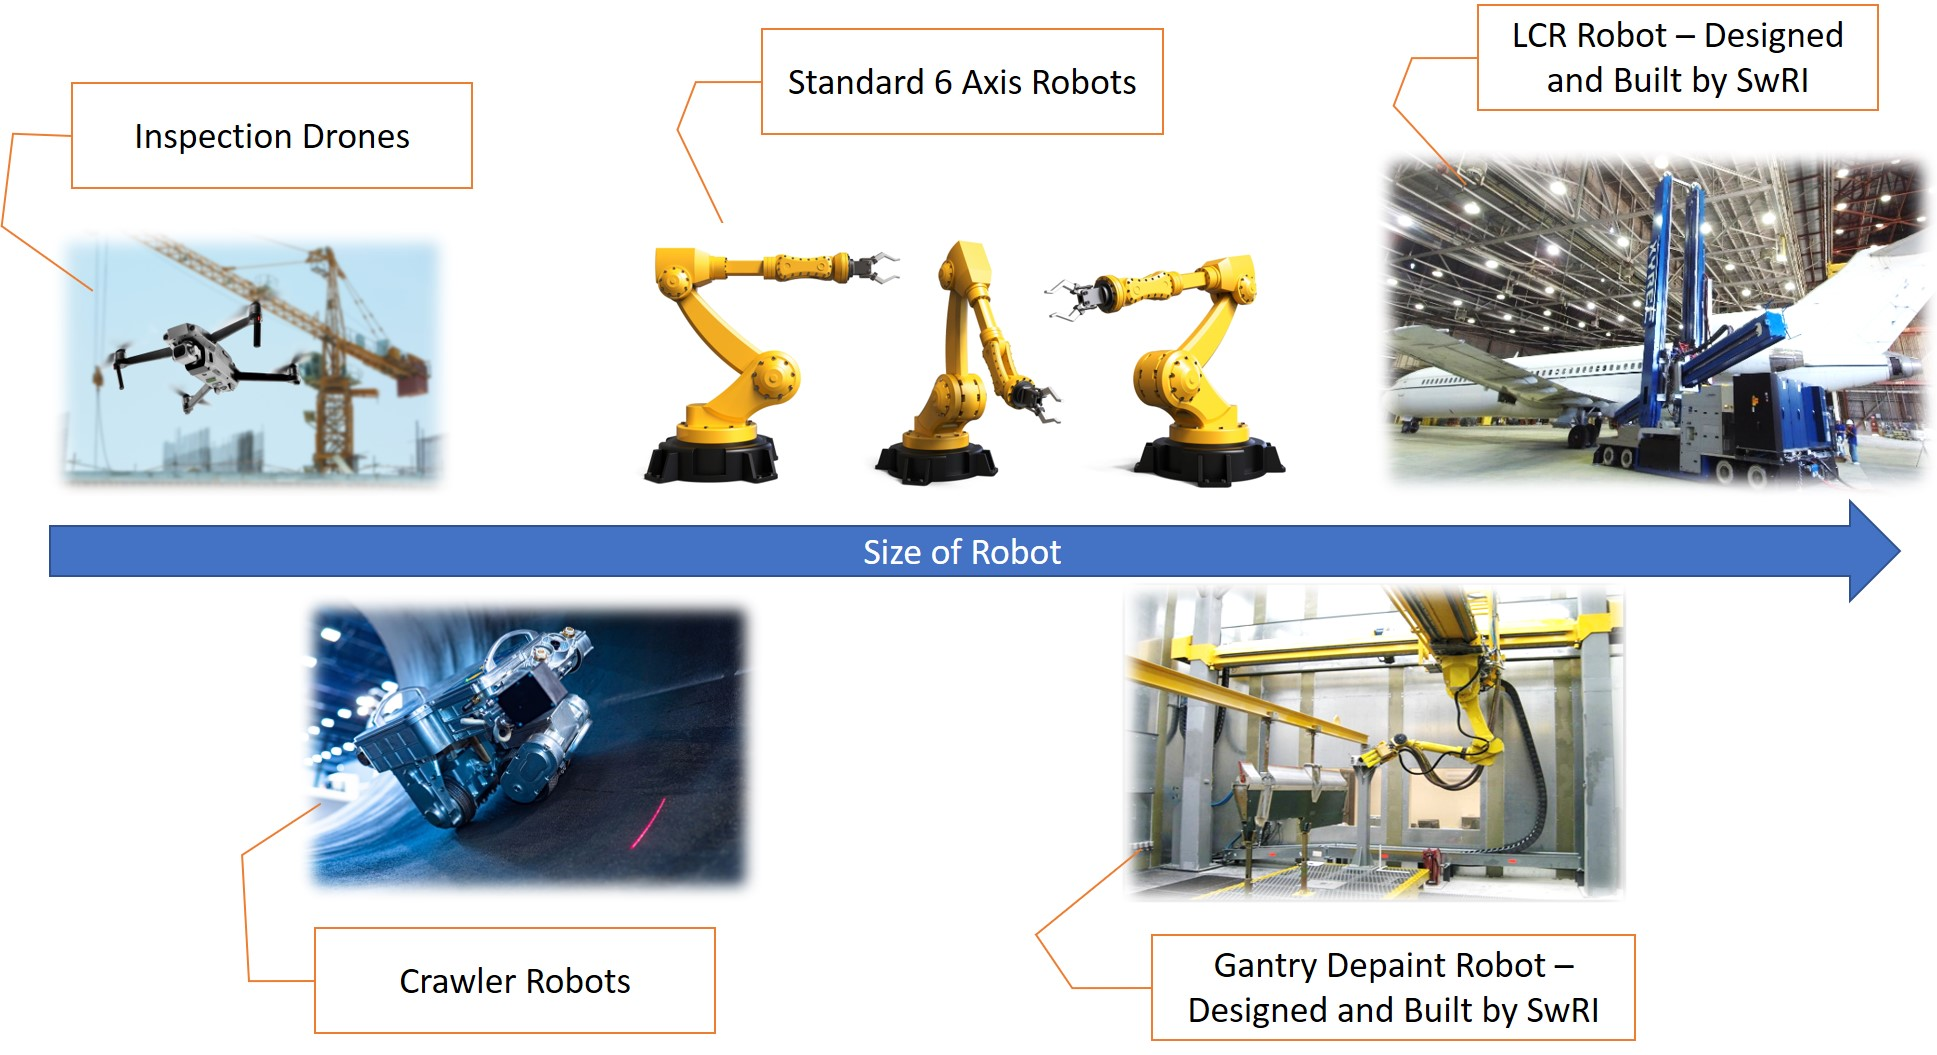 five images showing the size of robotic hardware from smaller crawling/flying robots to 60 ton robots